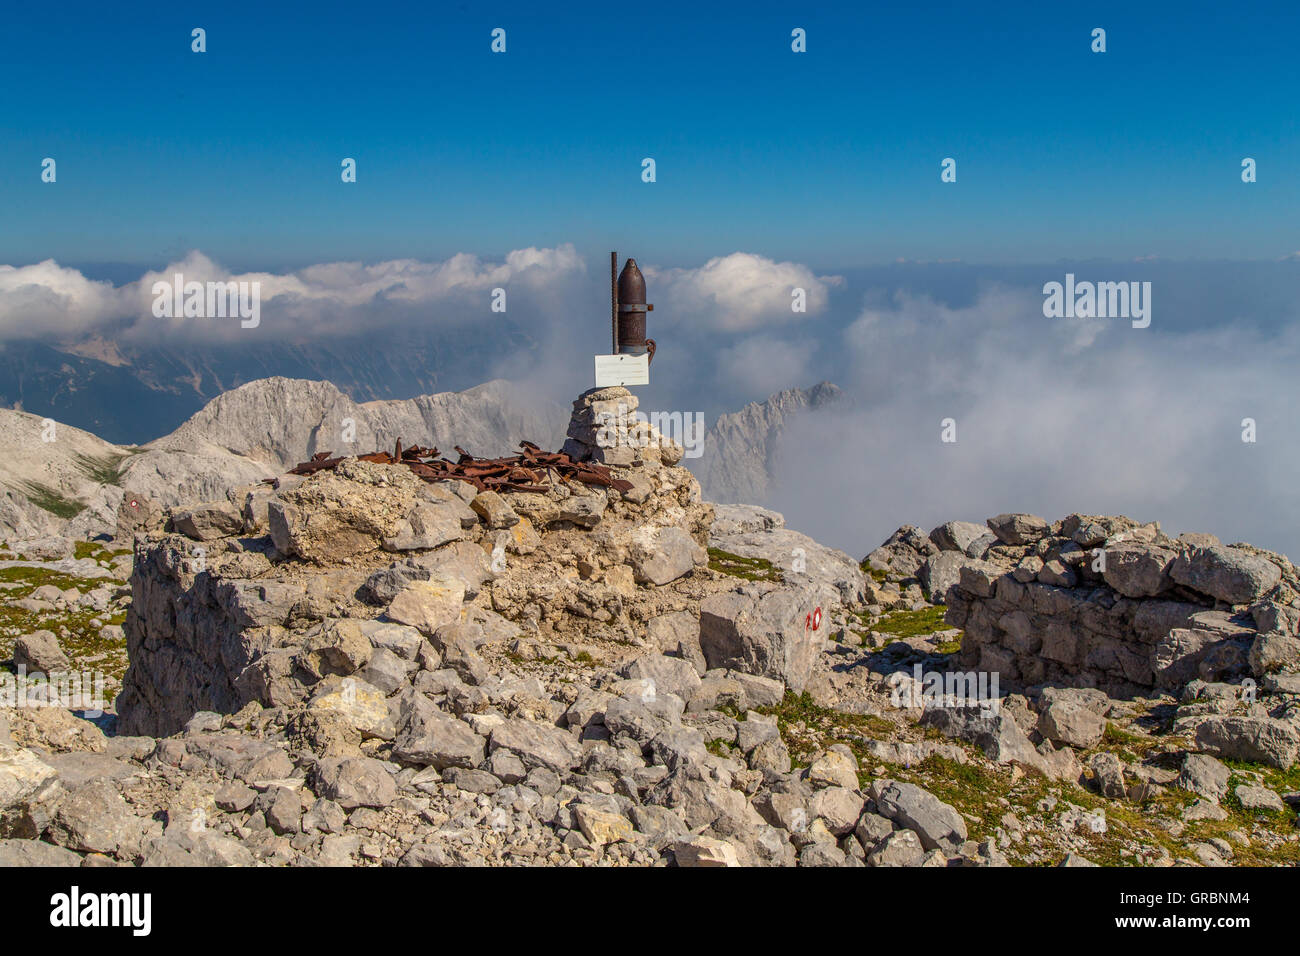 Echoes of world war one on mountain Batognica, Slovenia - Stock Image